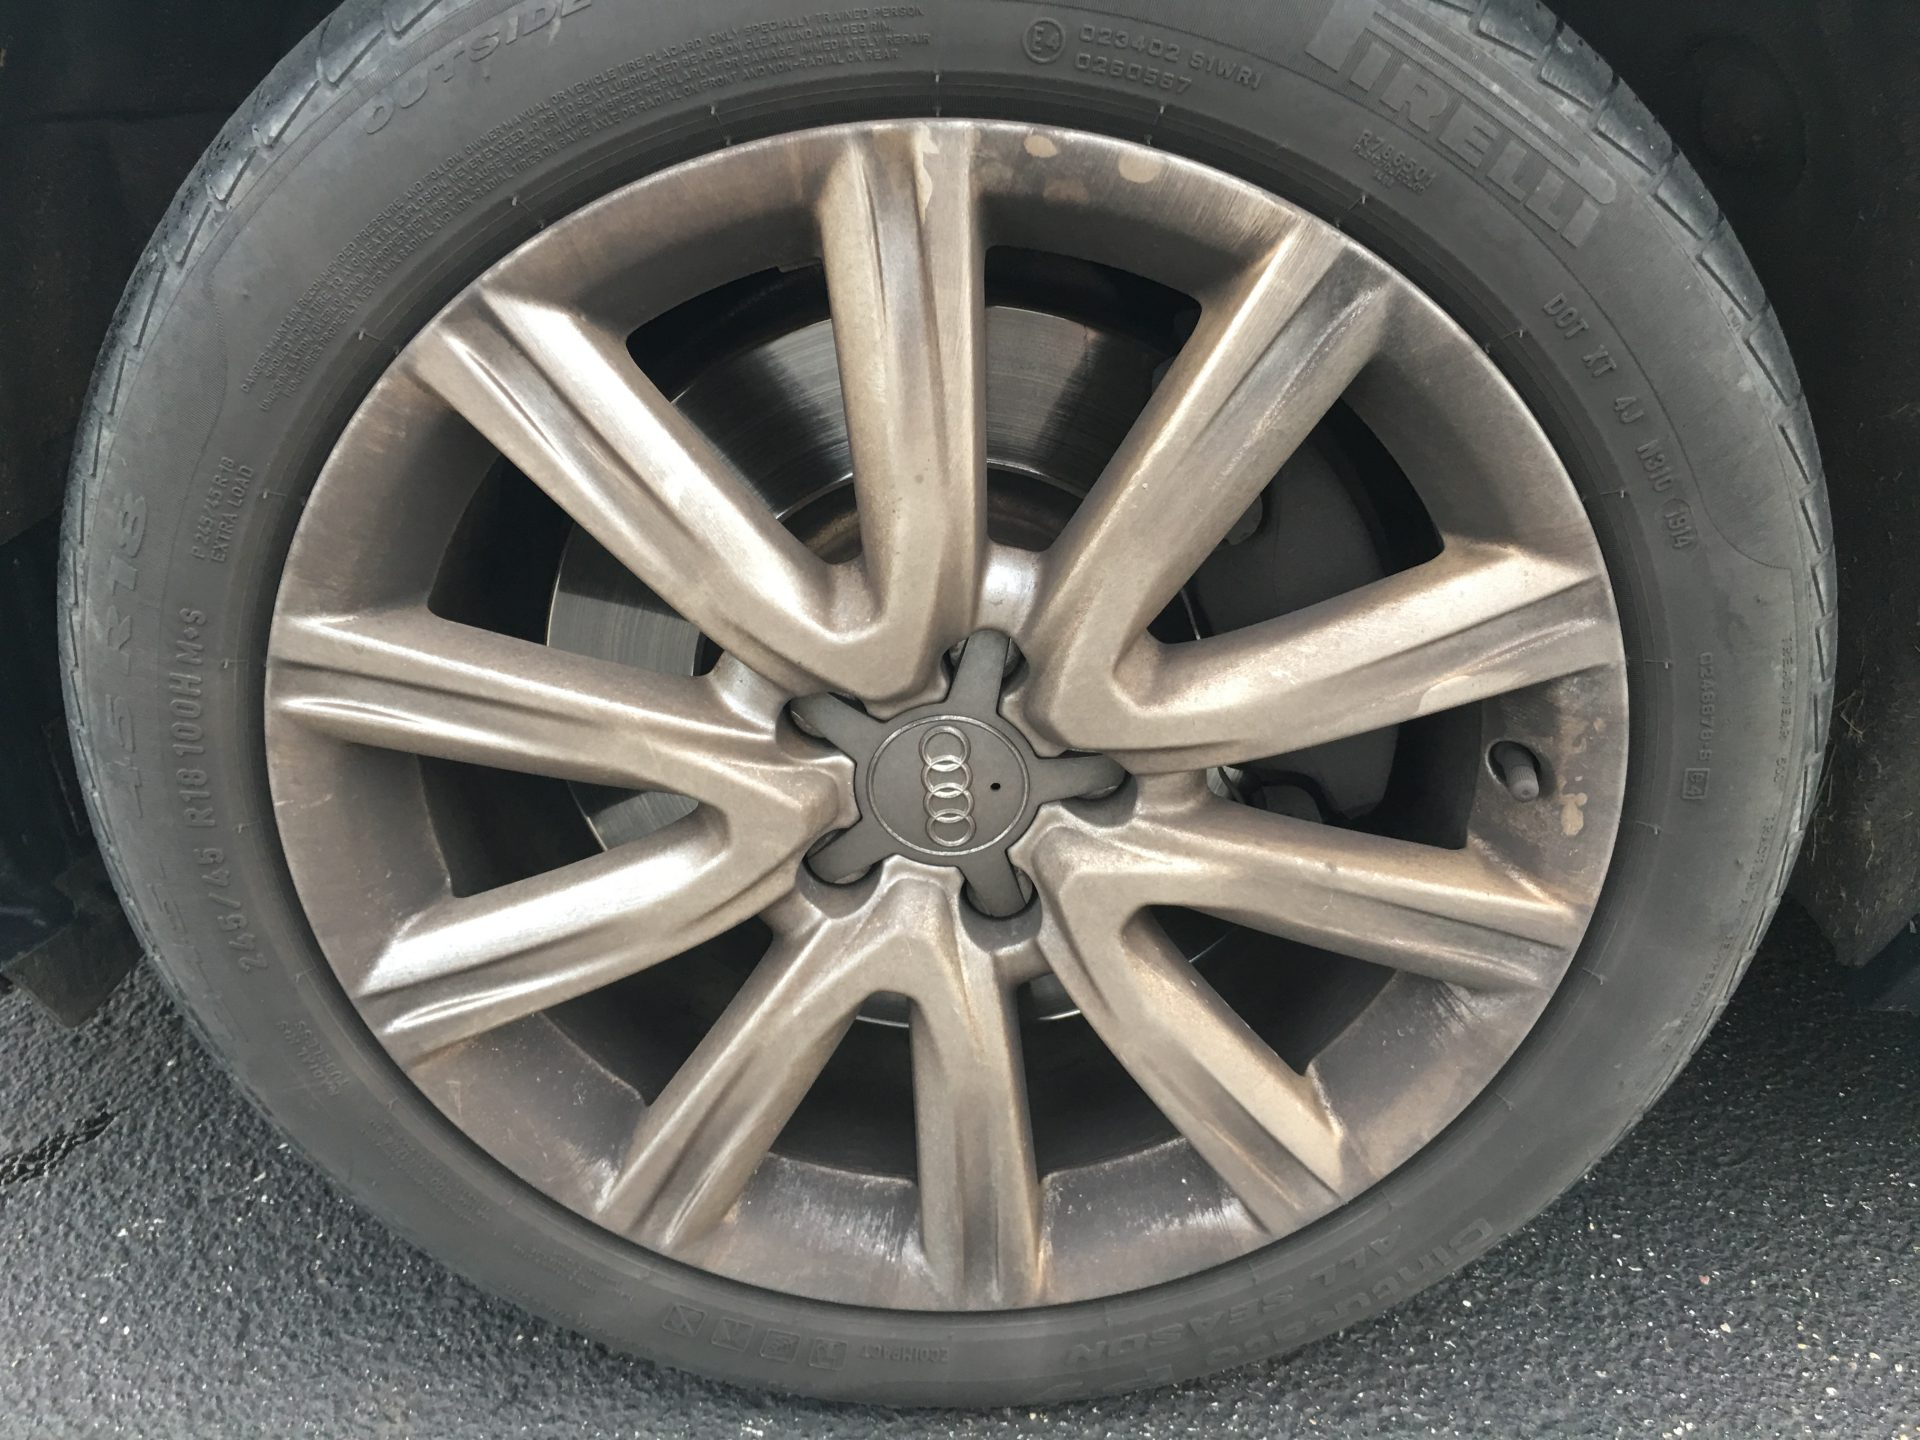 Audi Wheel With Brake Dust